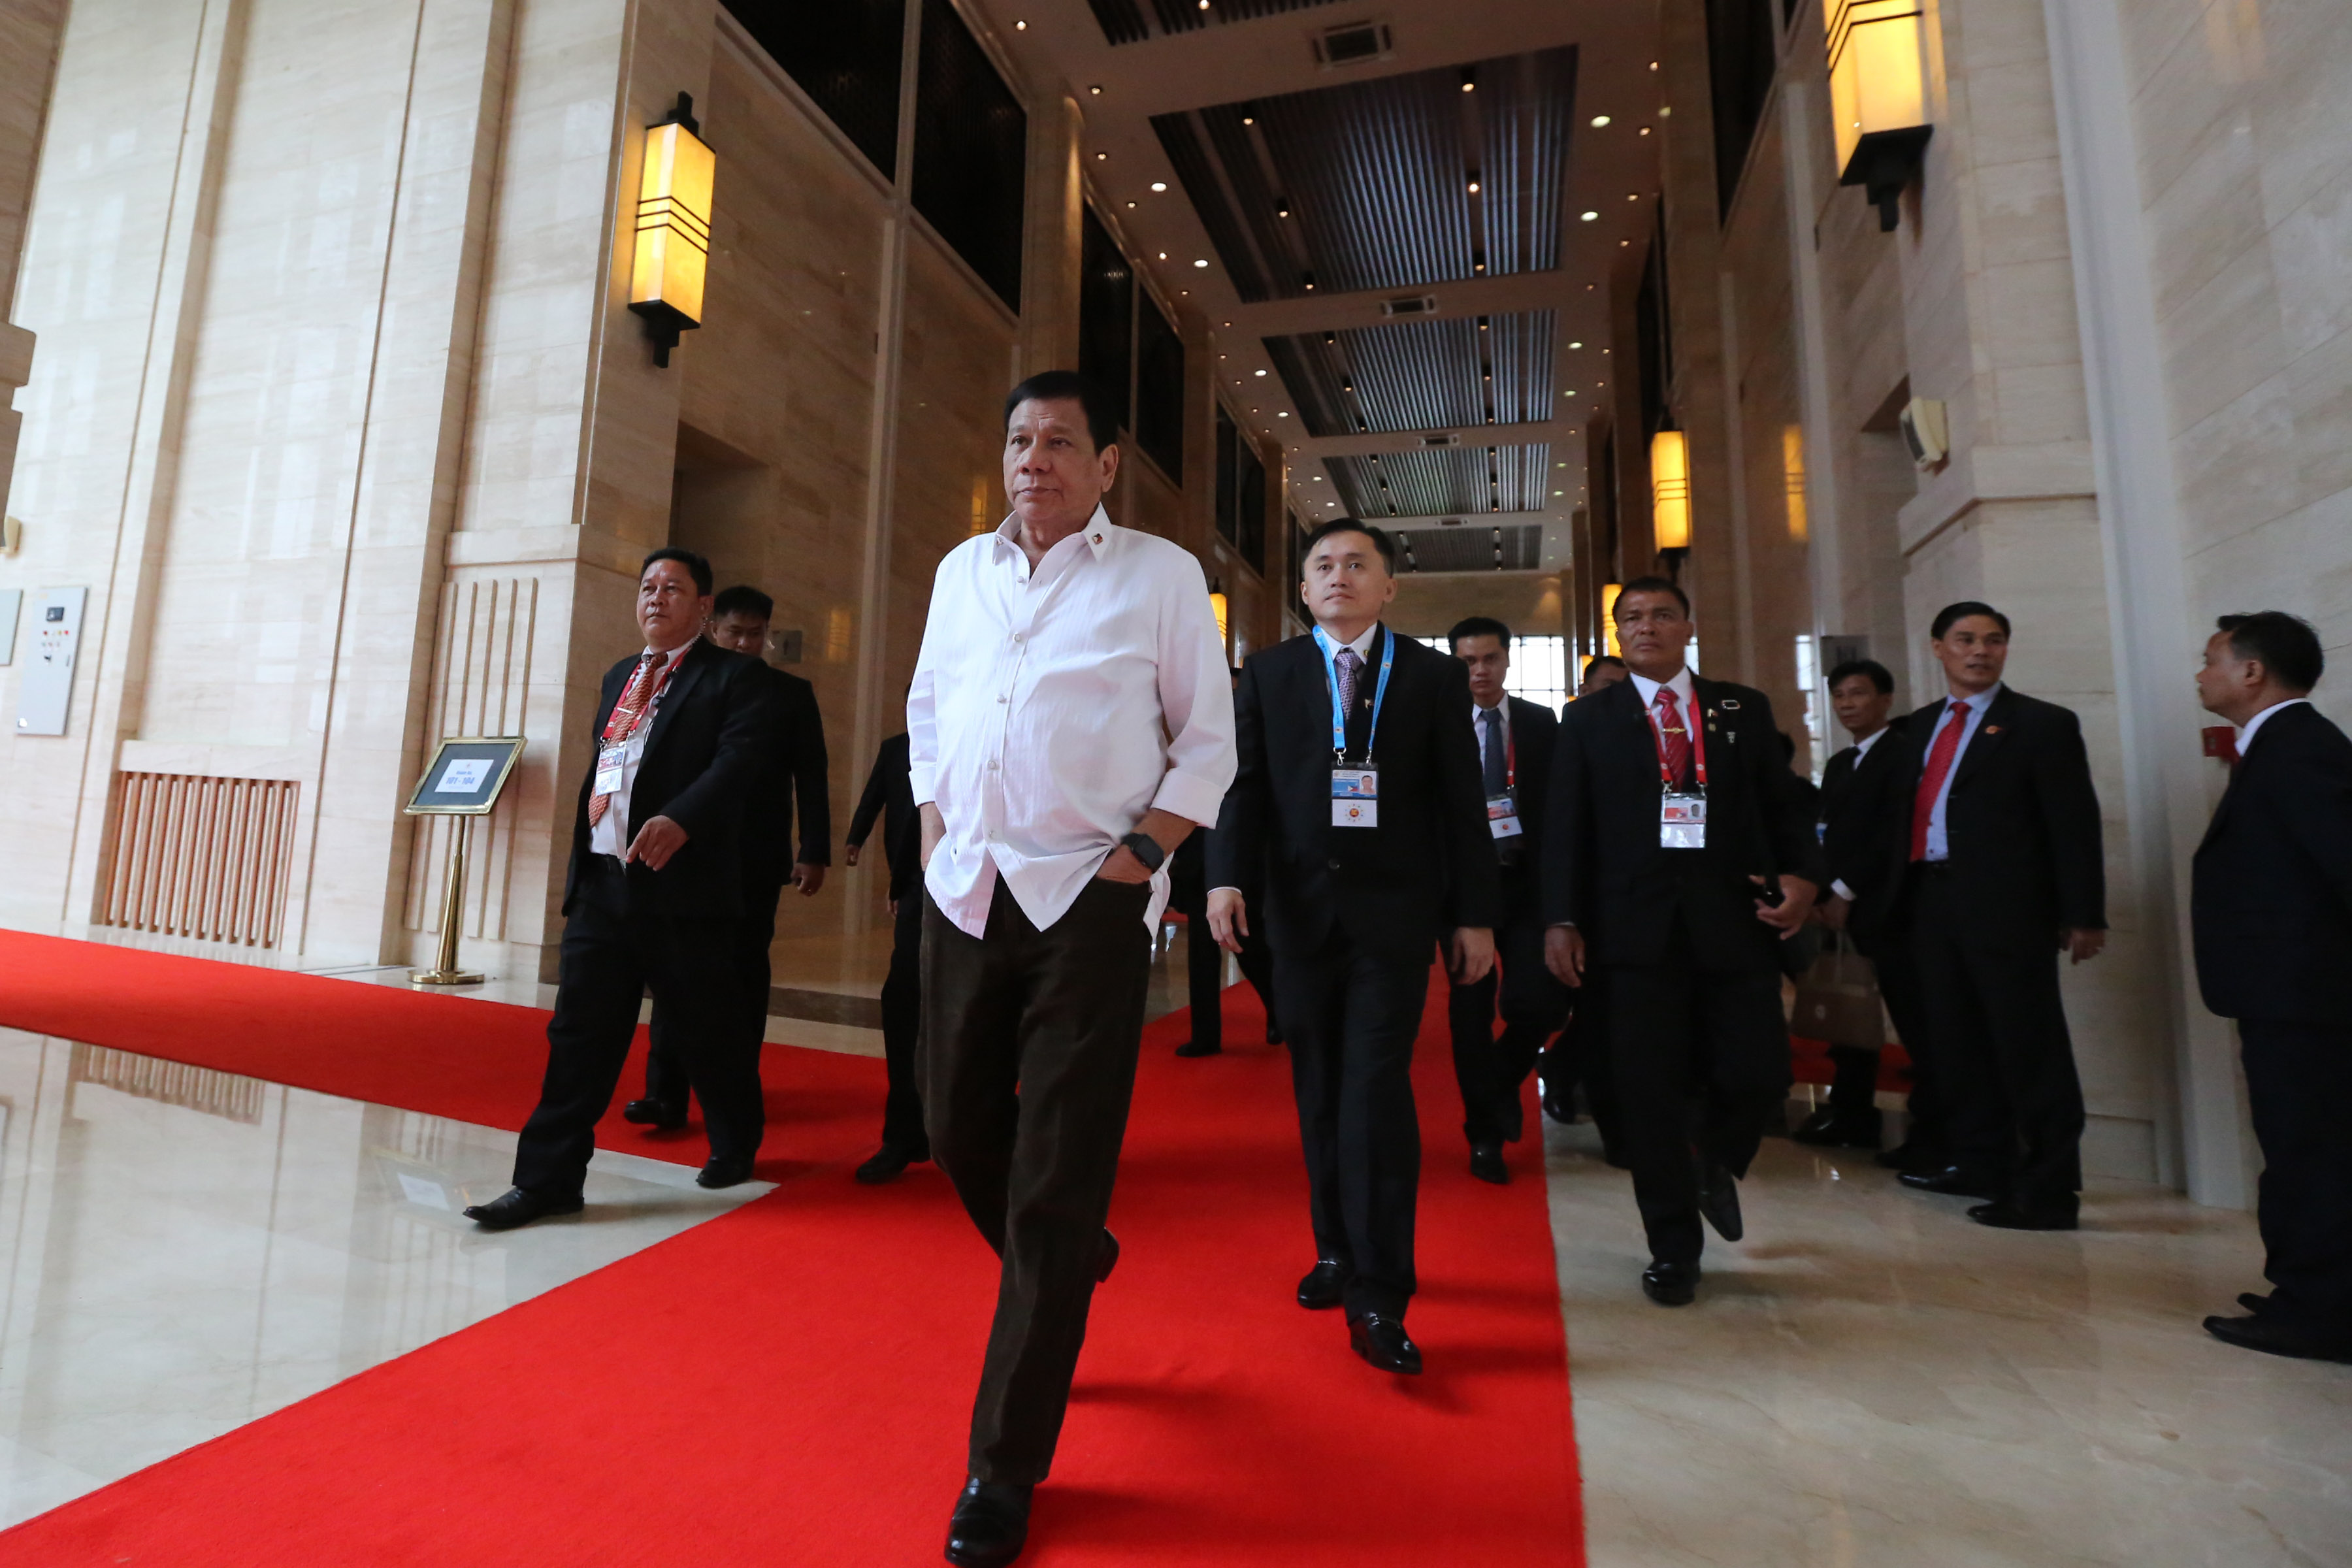 THIS YEAR'S HOST. President Rodrigo Duterte attends the 28th and 29th ASEAN Summit in Laos in September 2016. Presidential photo